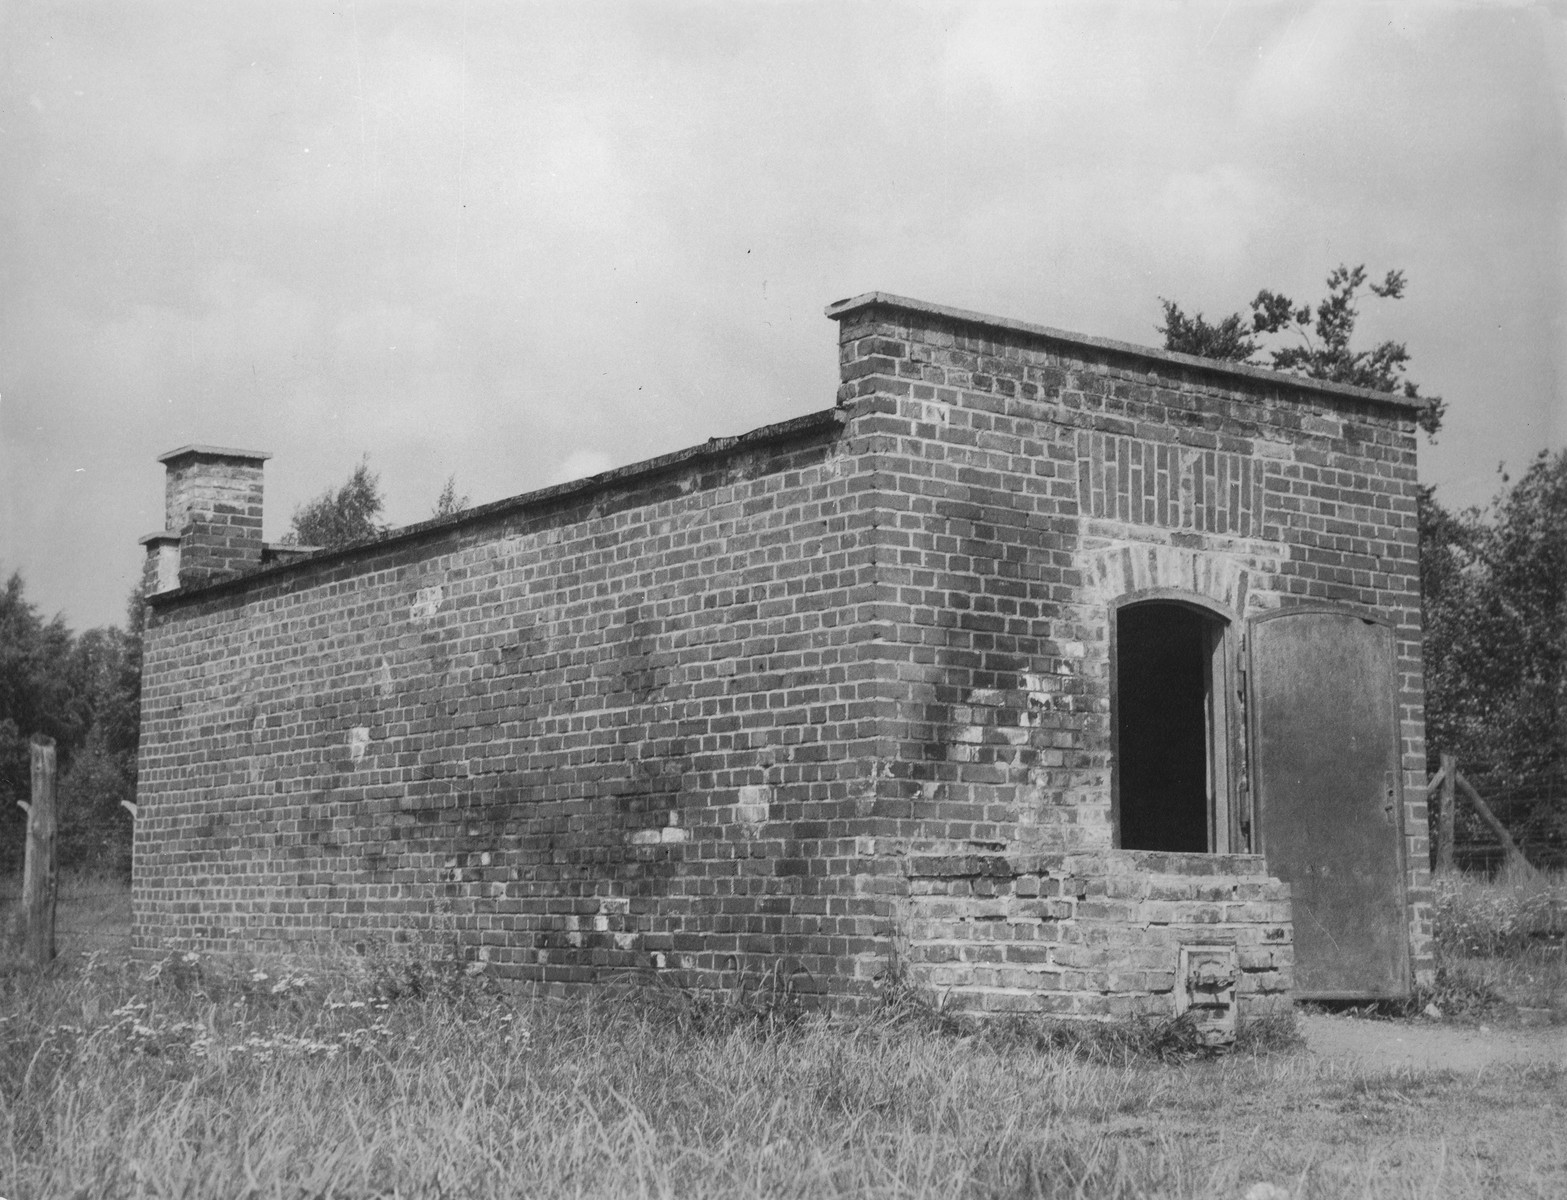 A postwar view of the gas chambers at Stutthof.